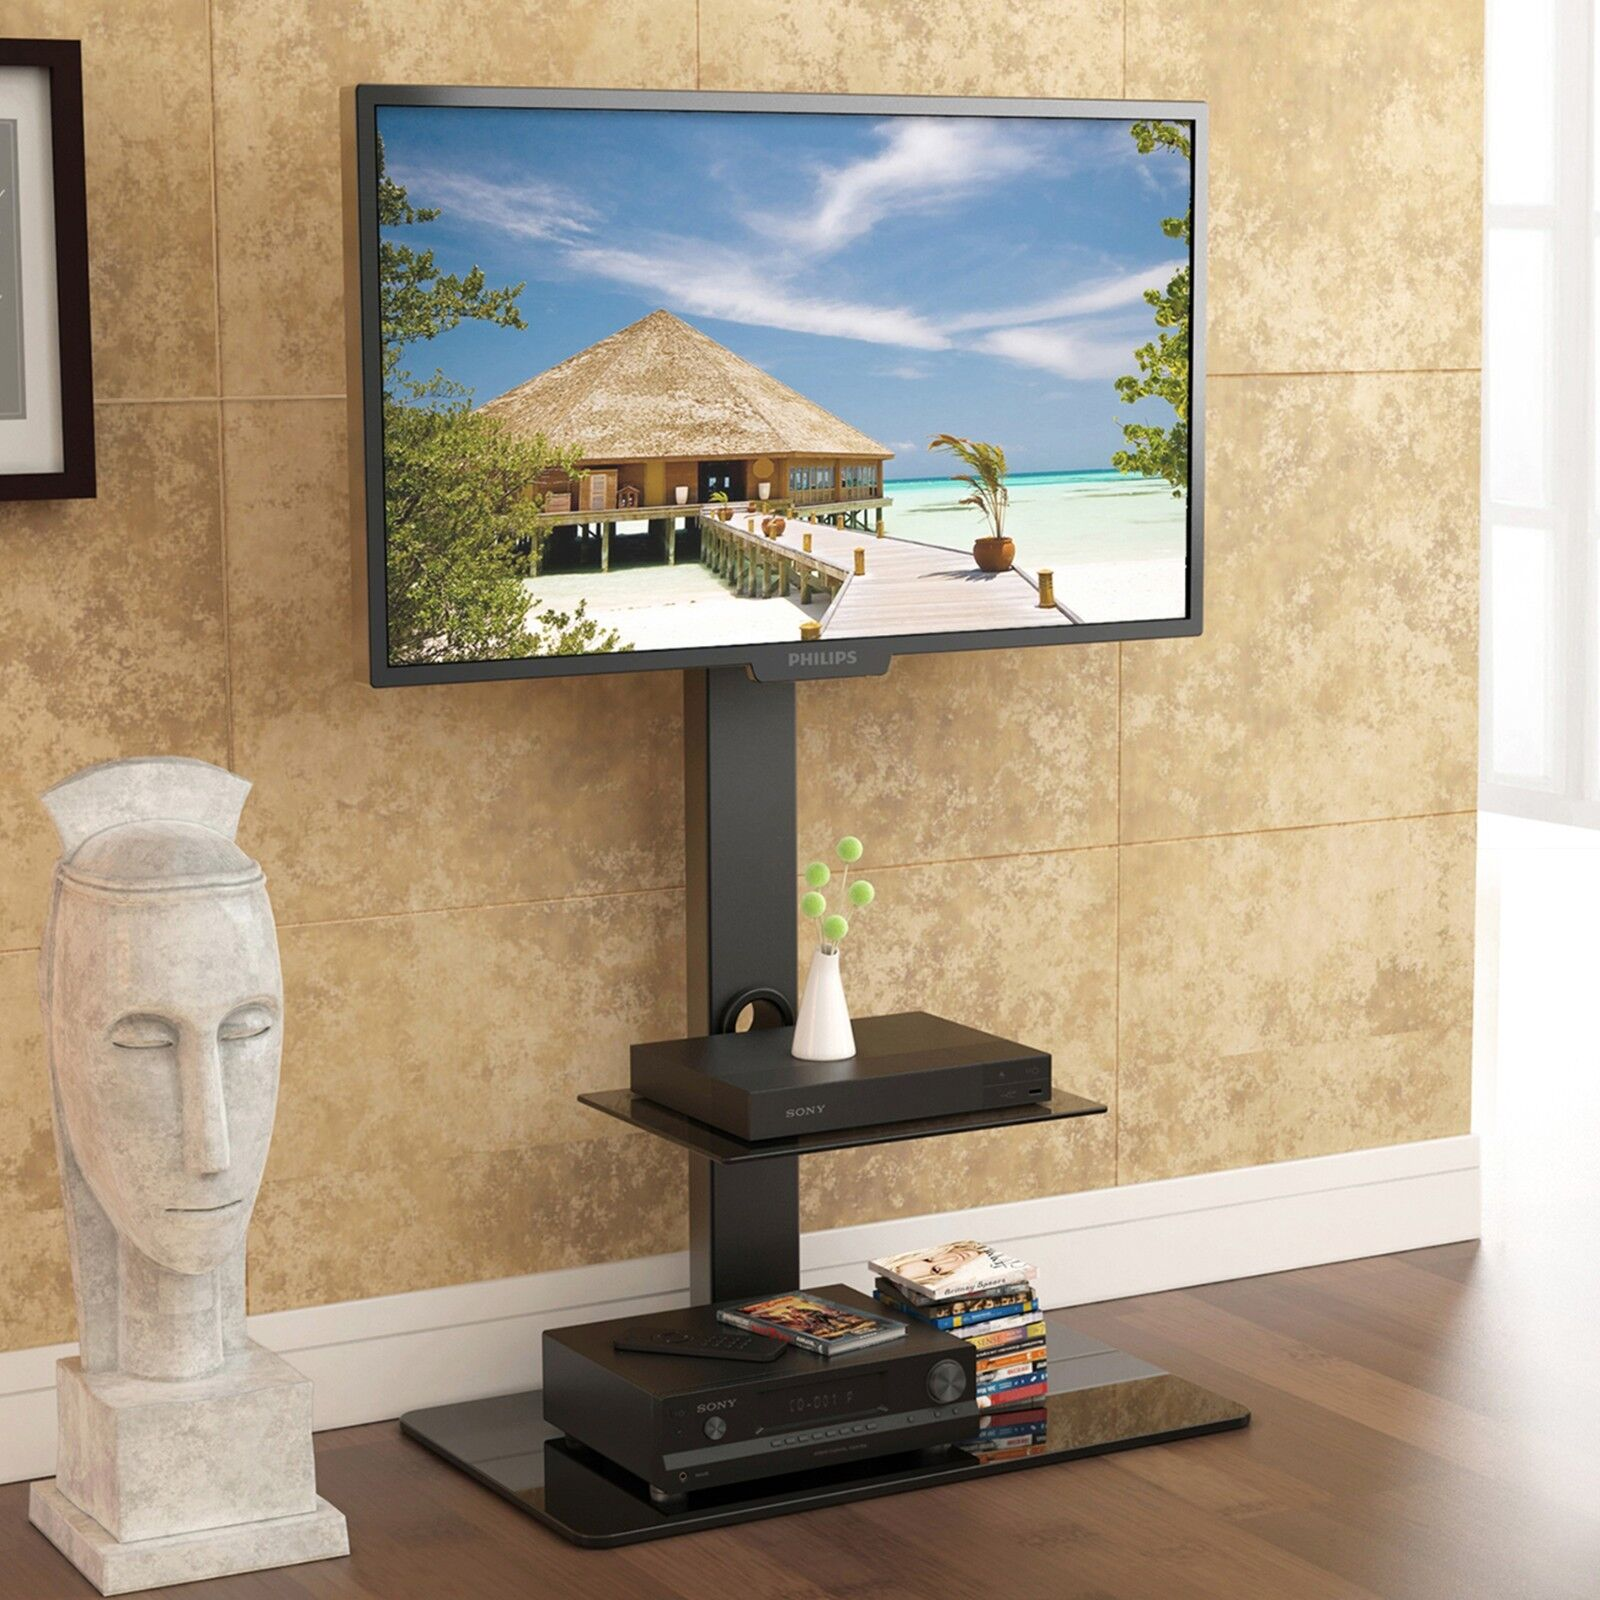 Fitueyes Flat Screen Panel TV Stands With Mount Shelves For